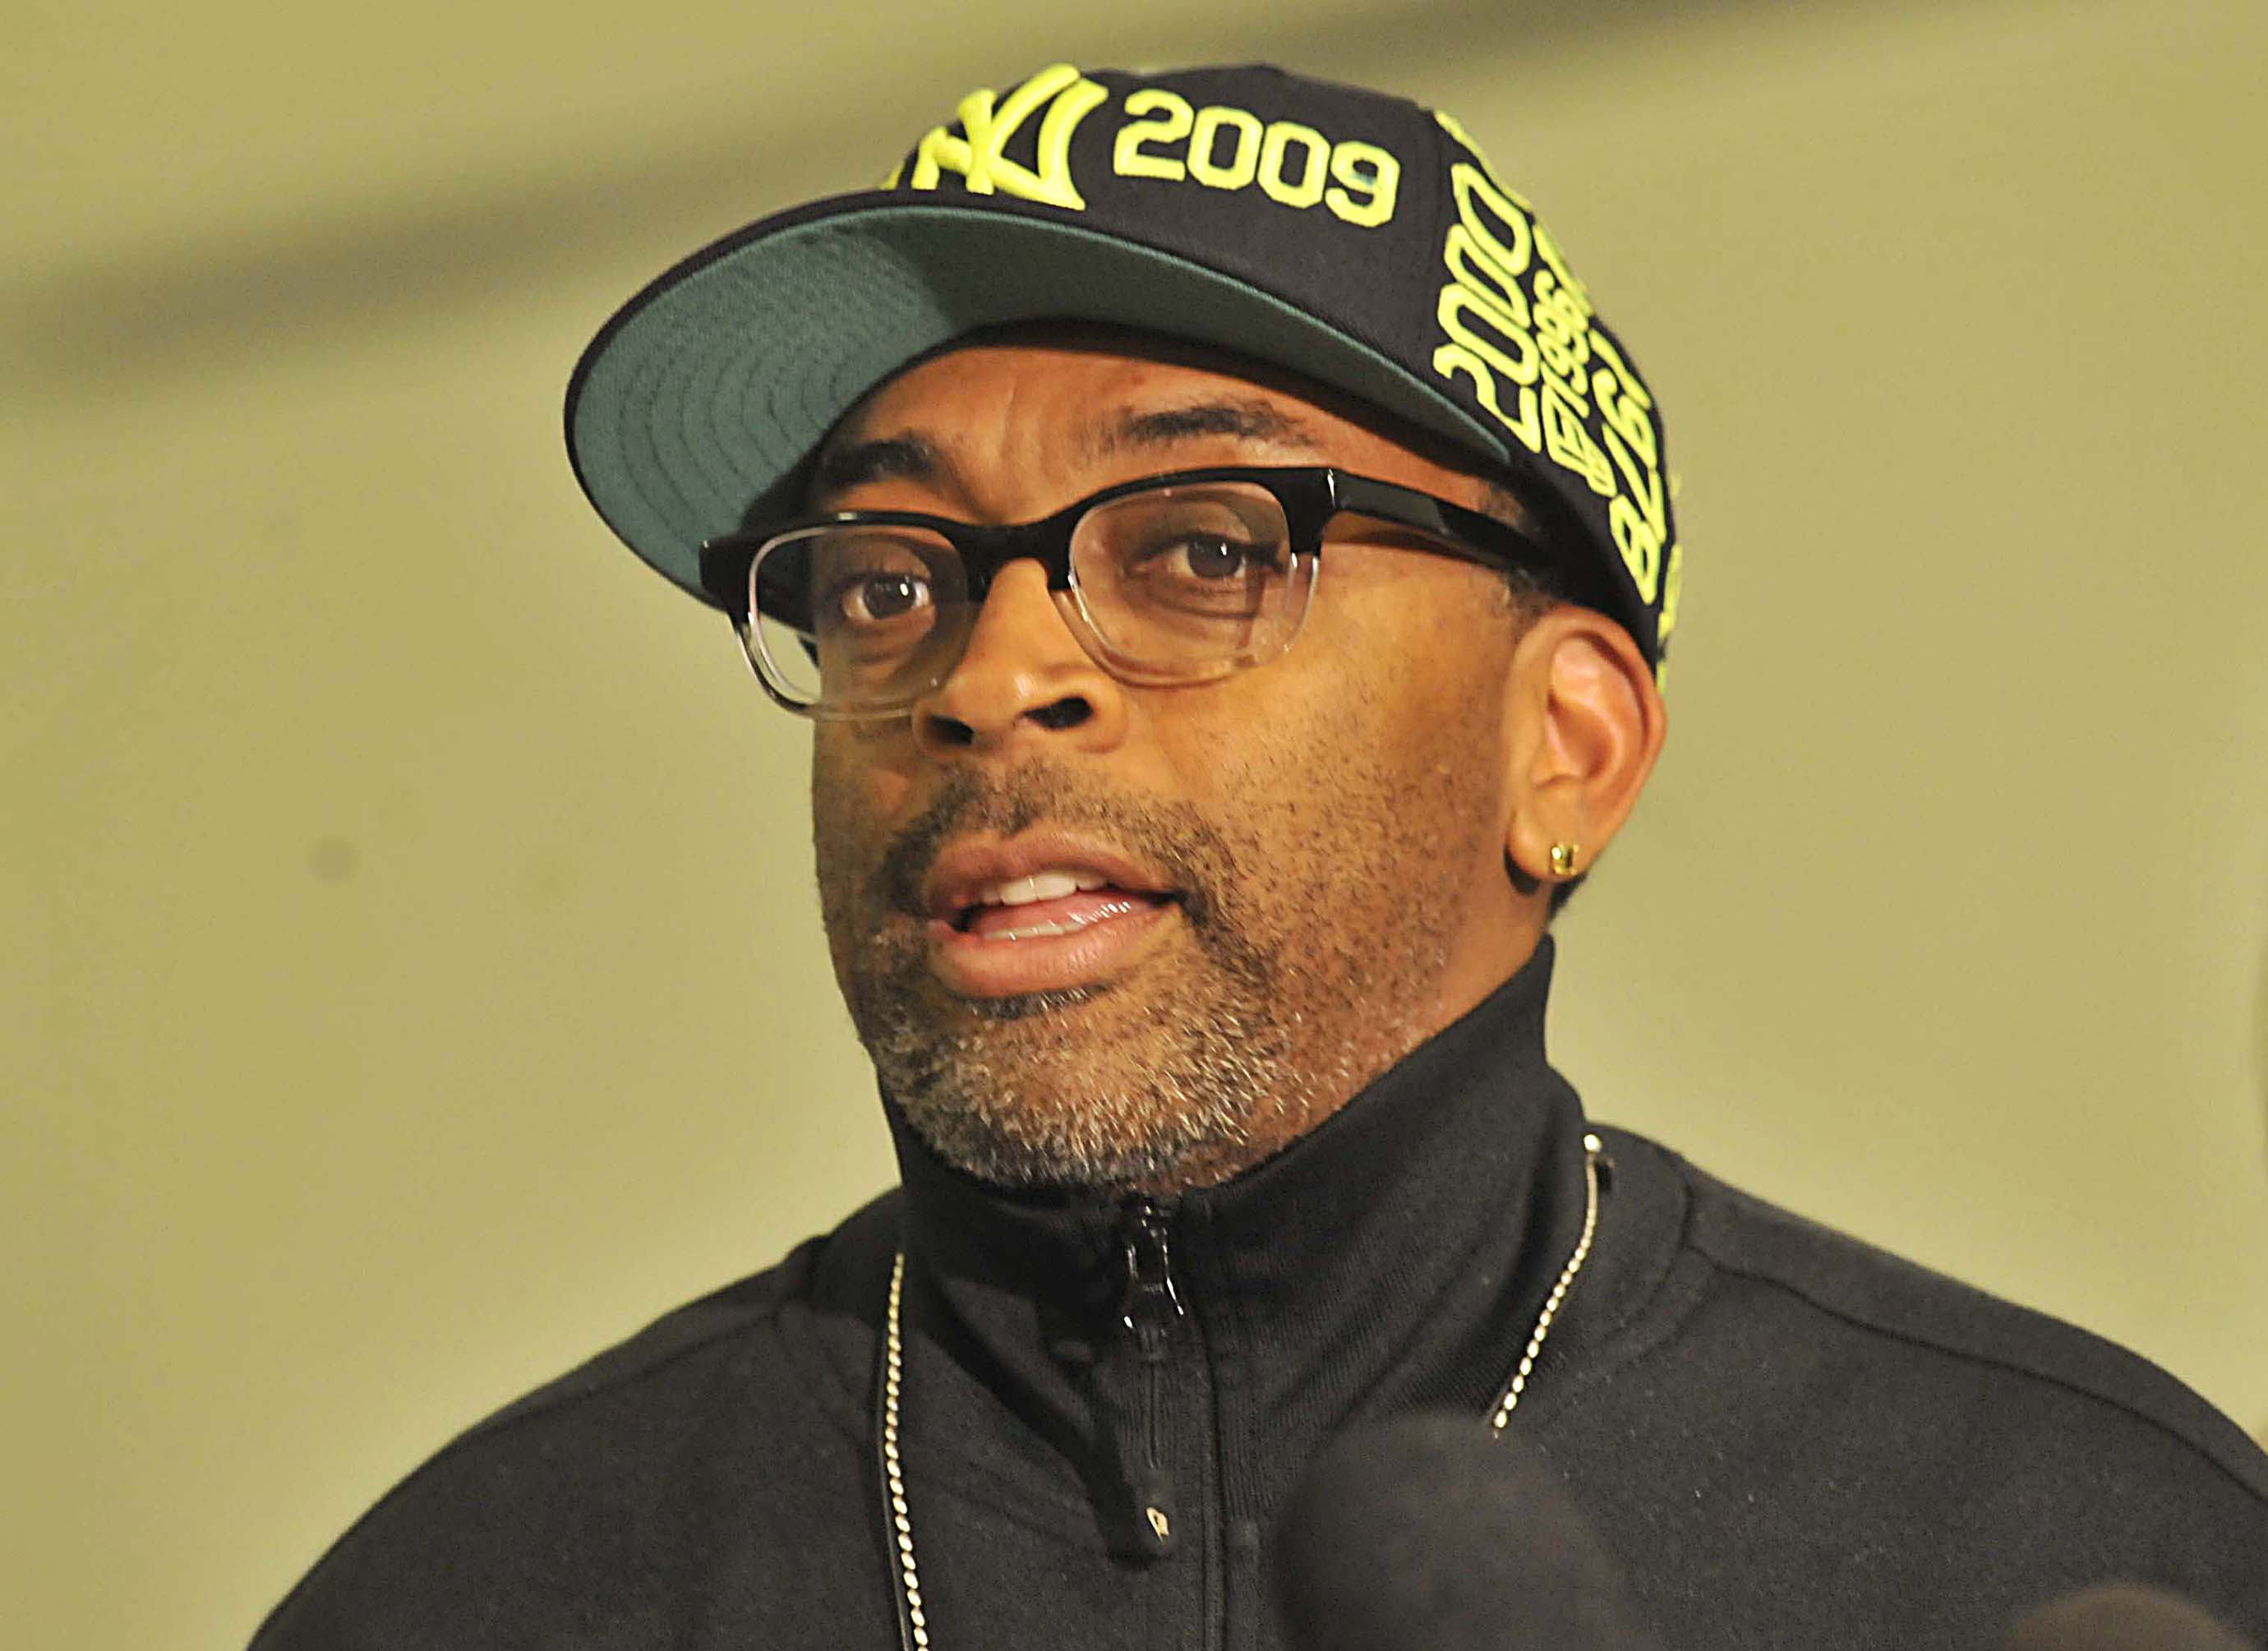 https://upload.wikimedia.org/wikipedia/commons/f/fc/Spike_Lee_%282012%29.jpg